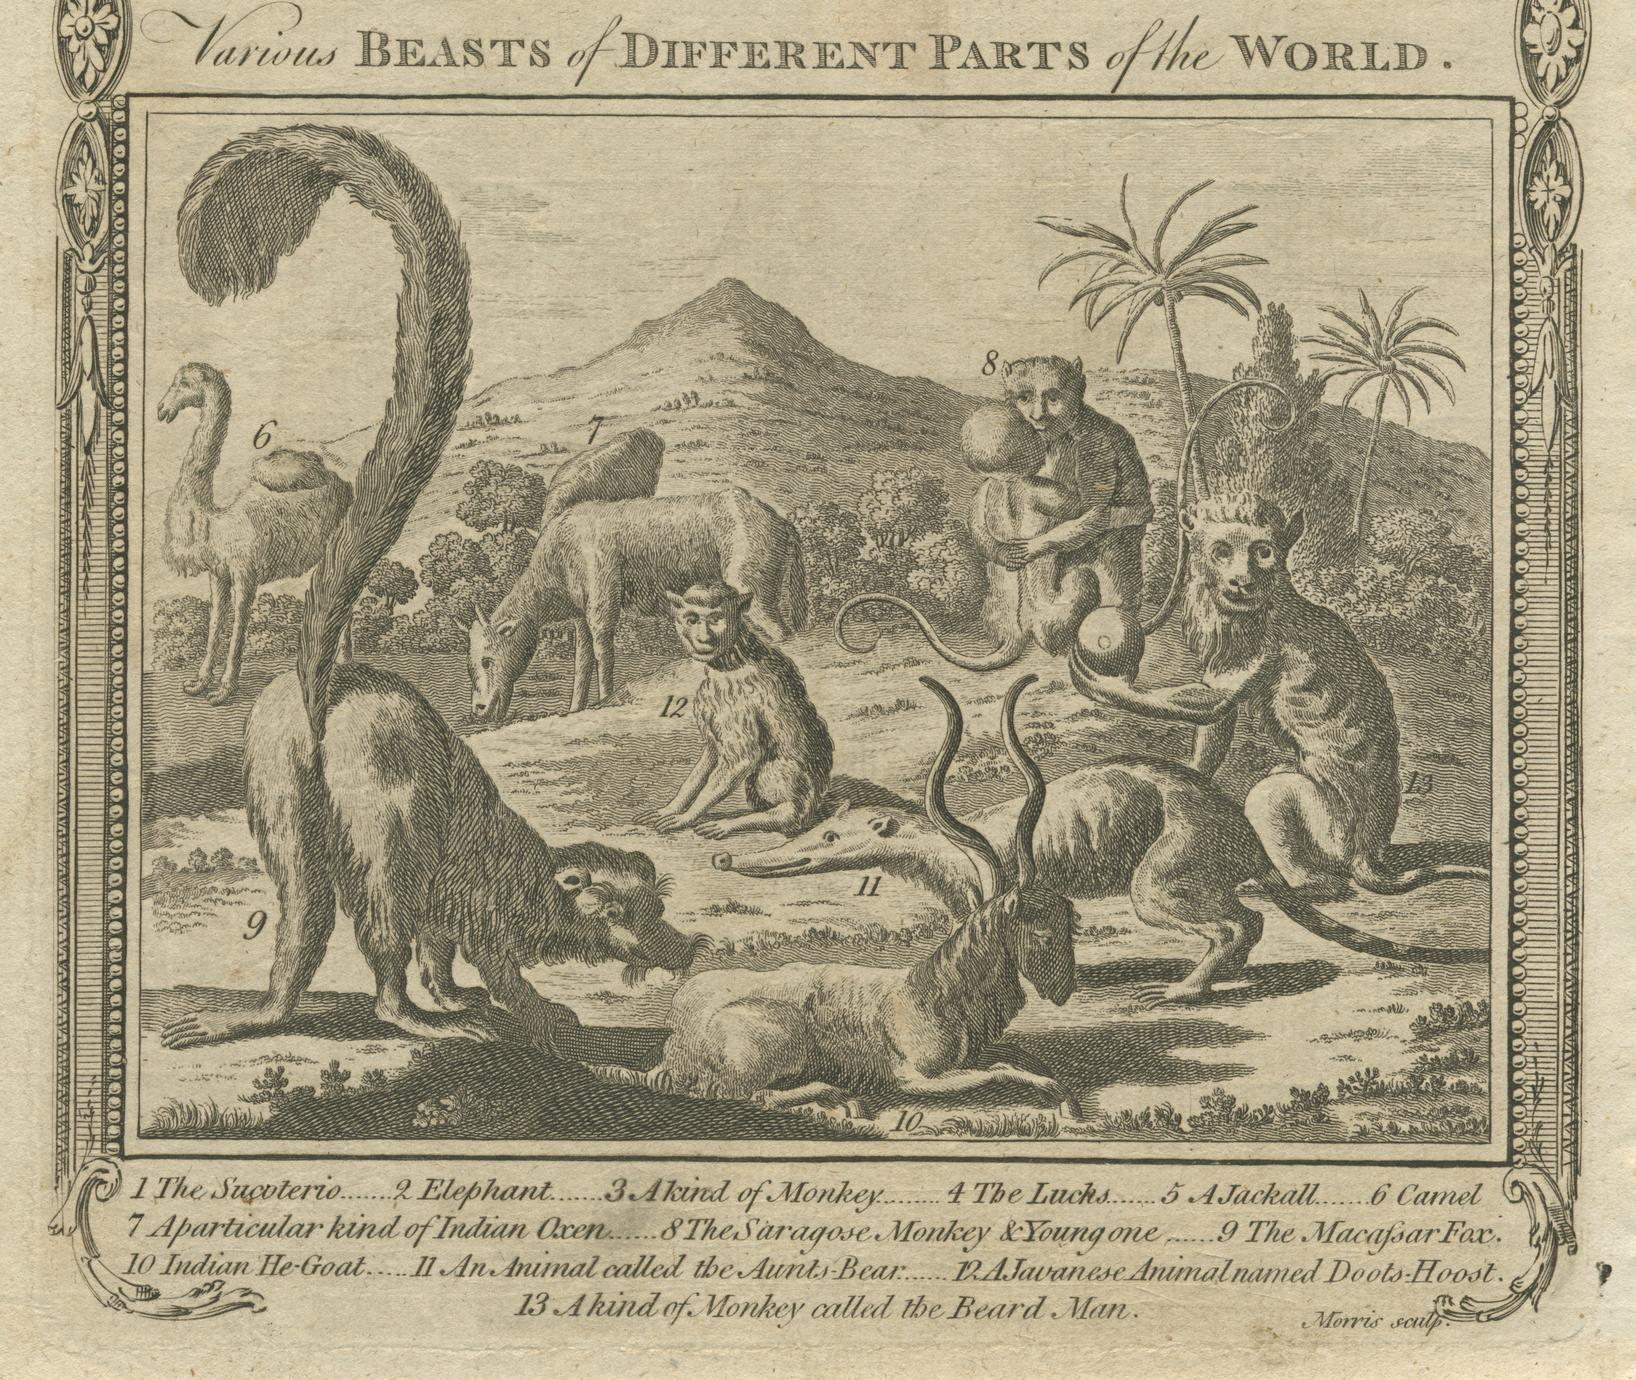 Various Beasts of Different Parts of the World